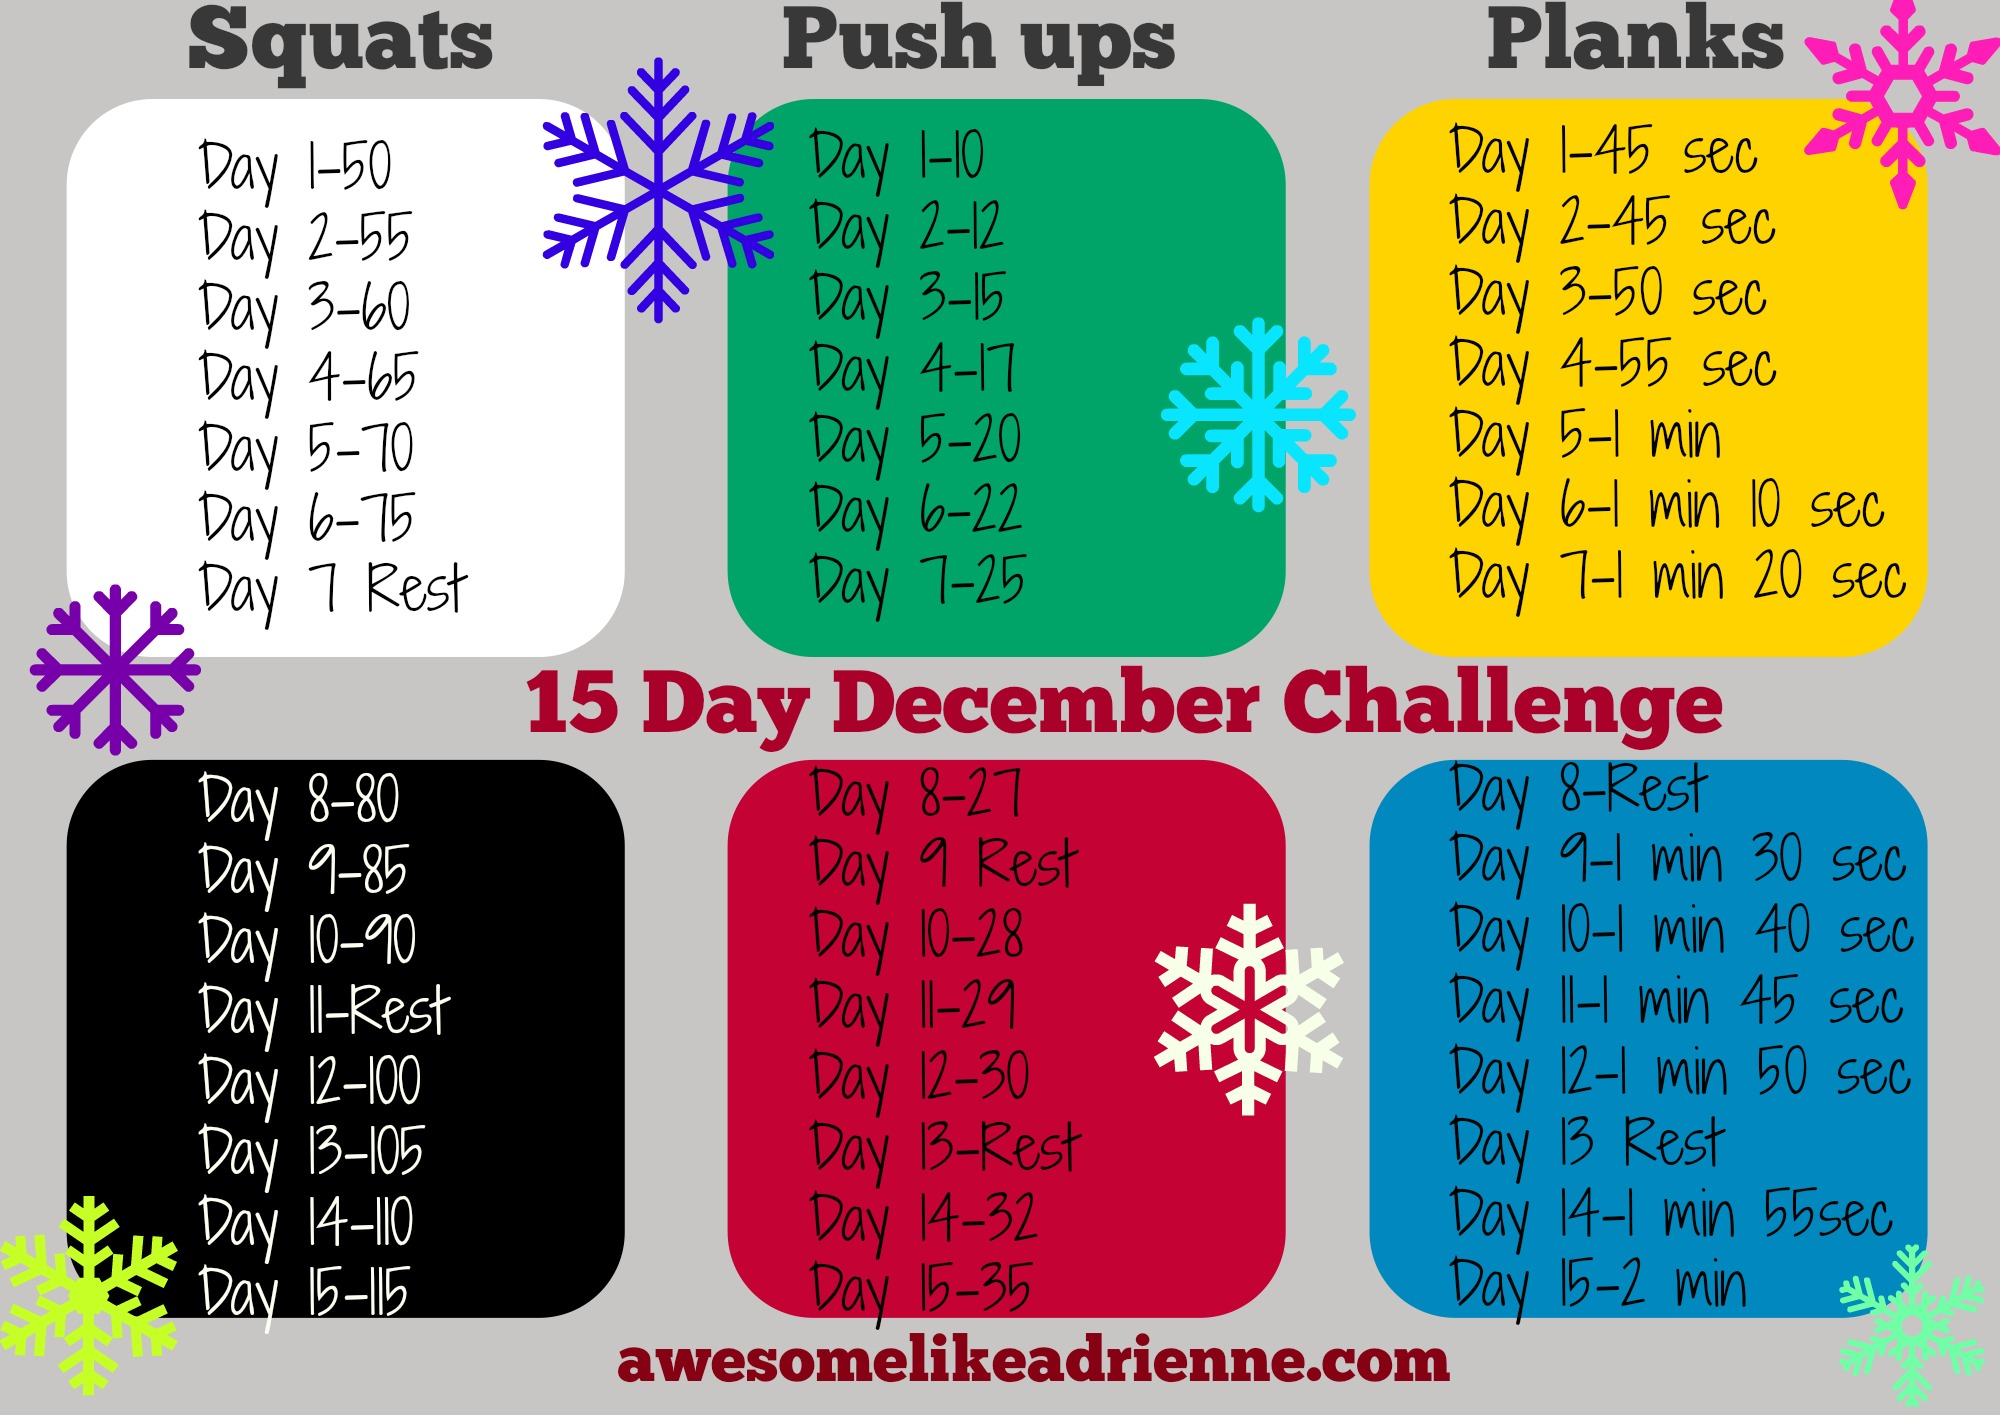 15 Day December Challenge-Squats, Push ups and Planks